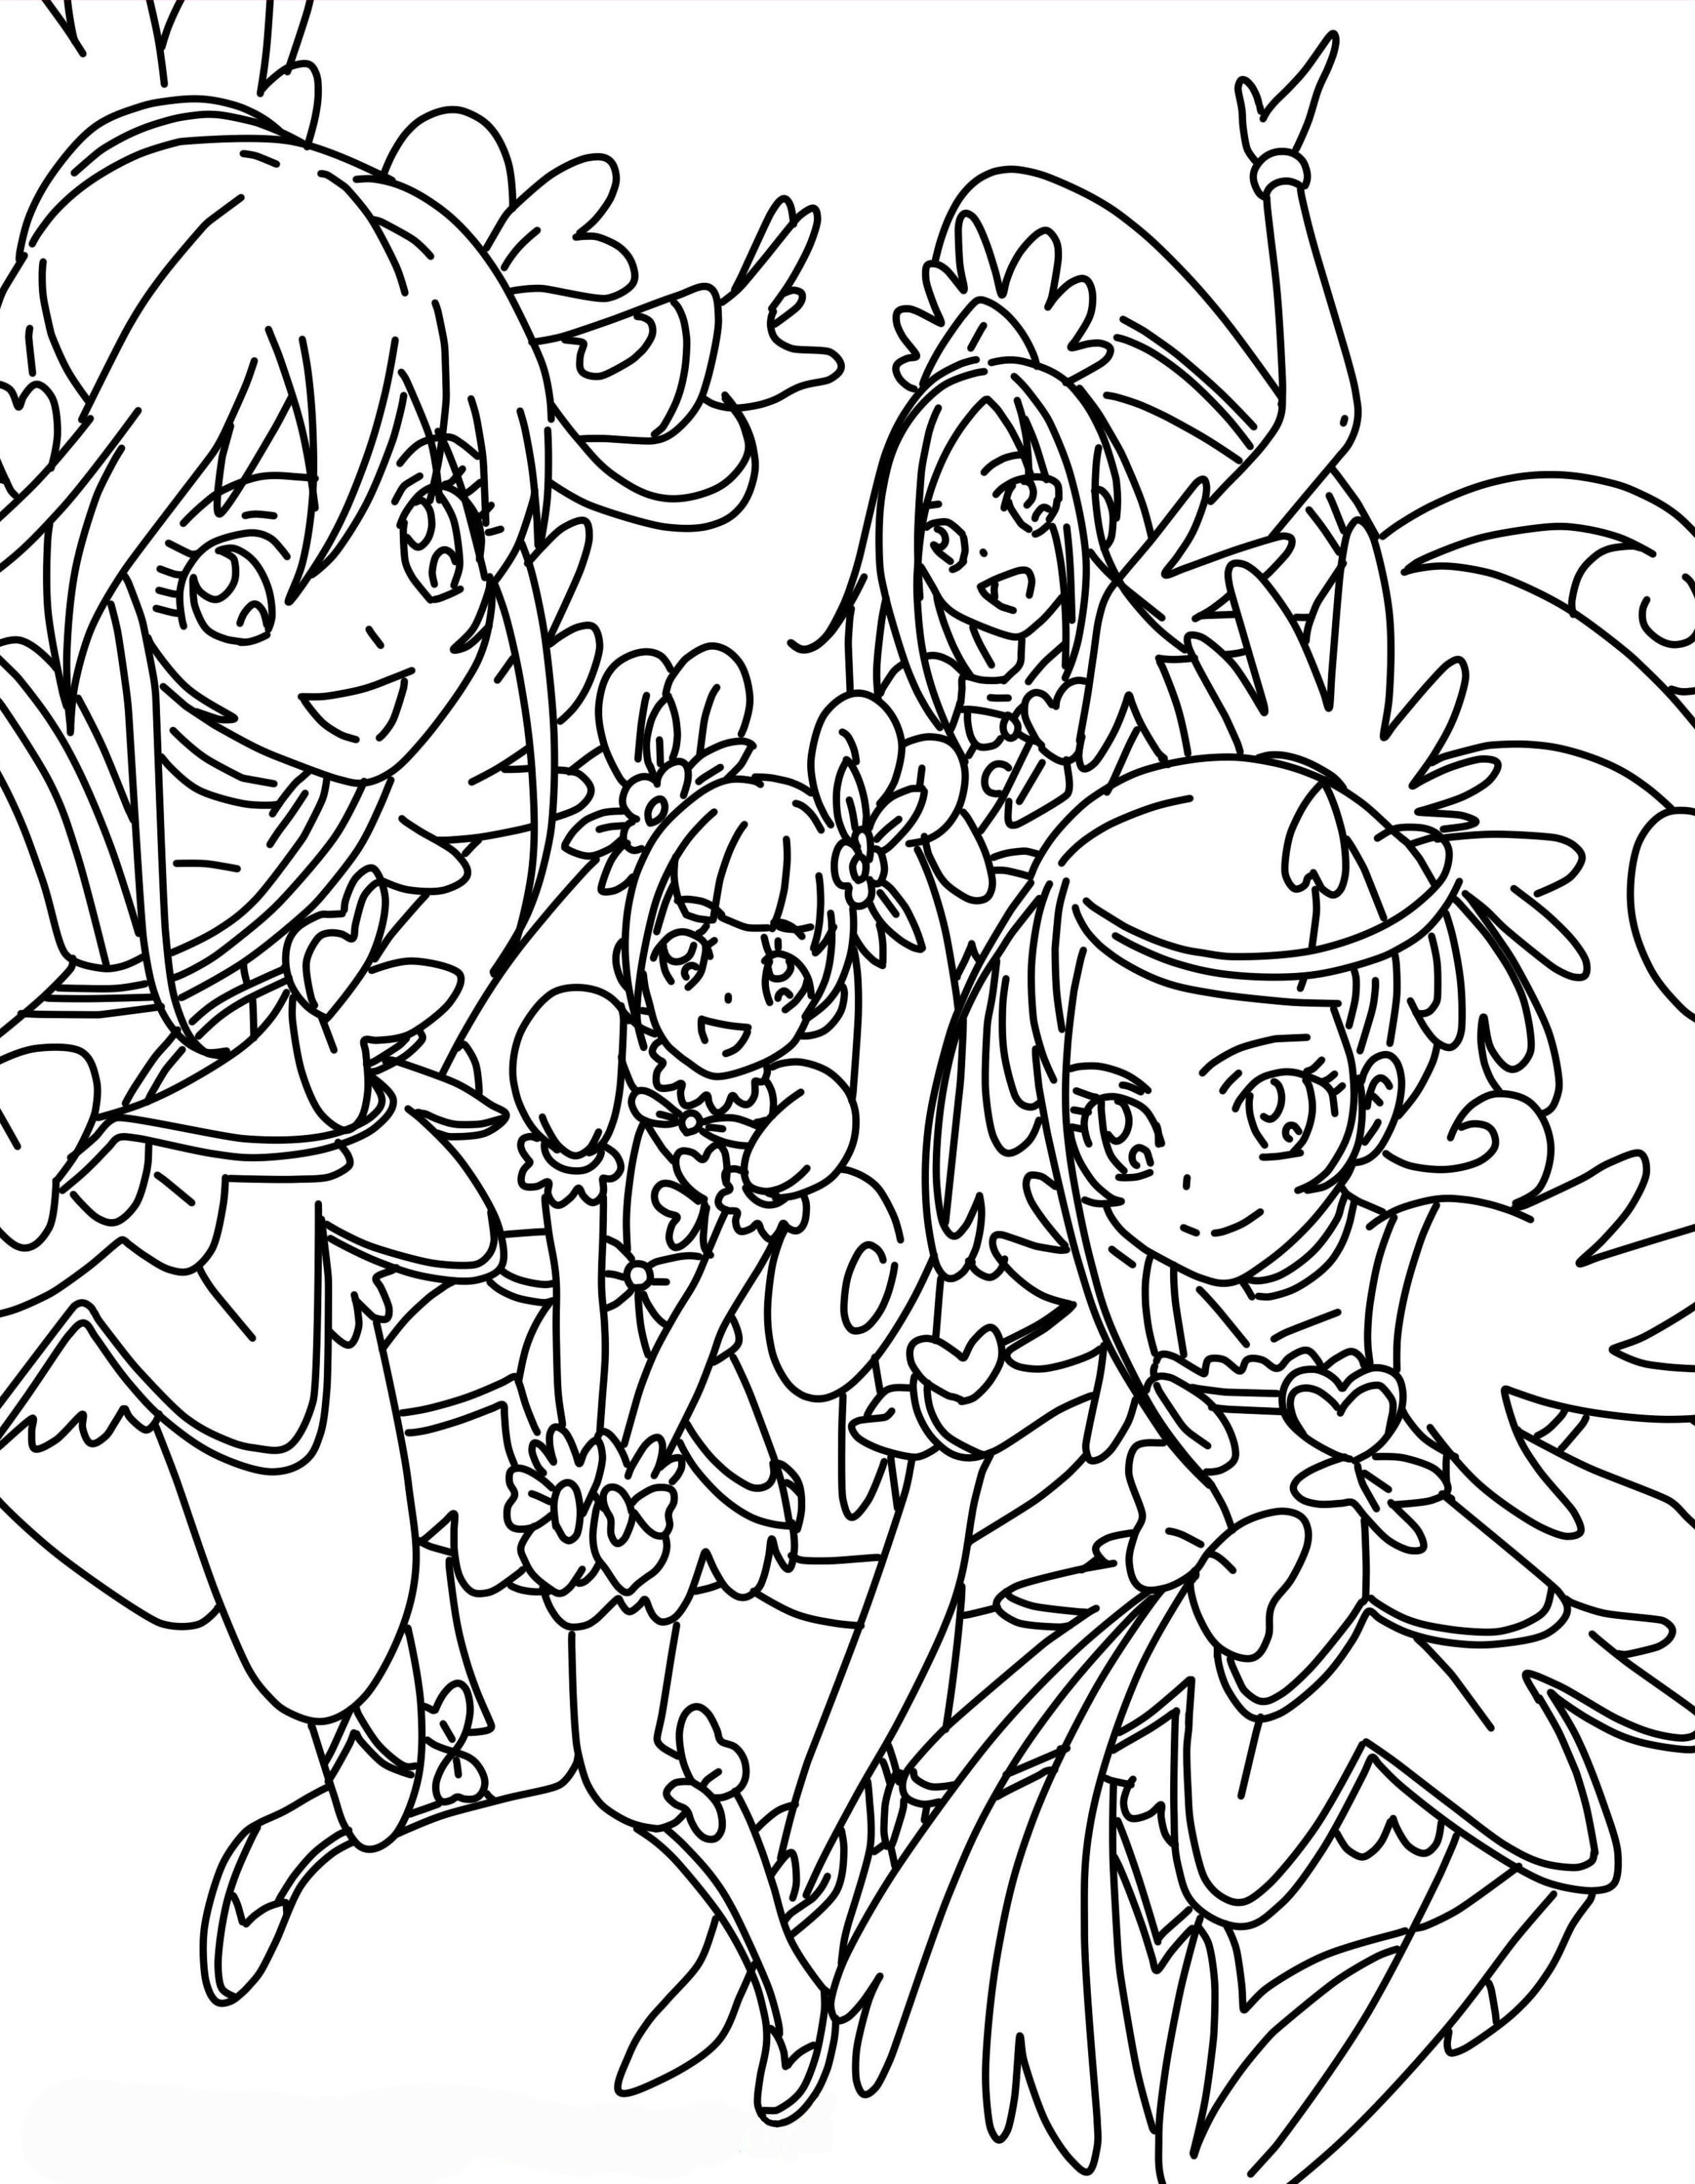 glitter force doki doki coloring pages Dokidoki precure coloring pages | Cure Coloring | Coloring pages  glitter force doki doki coloring pages